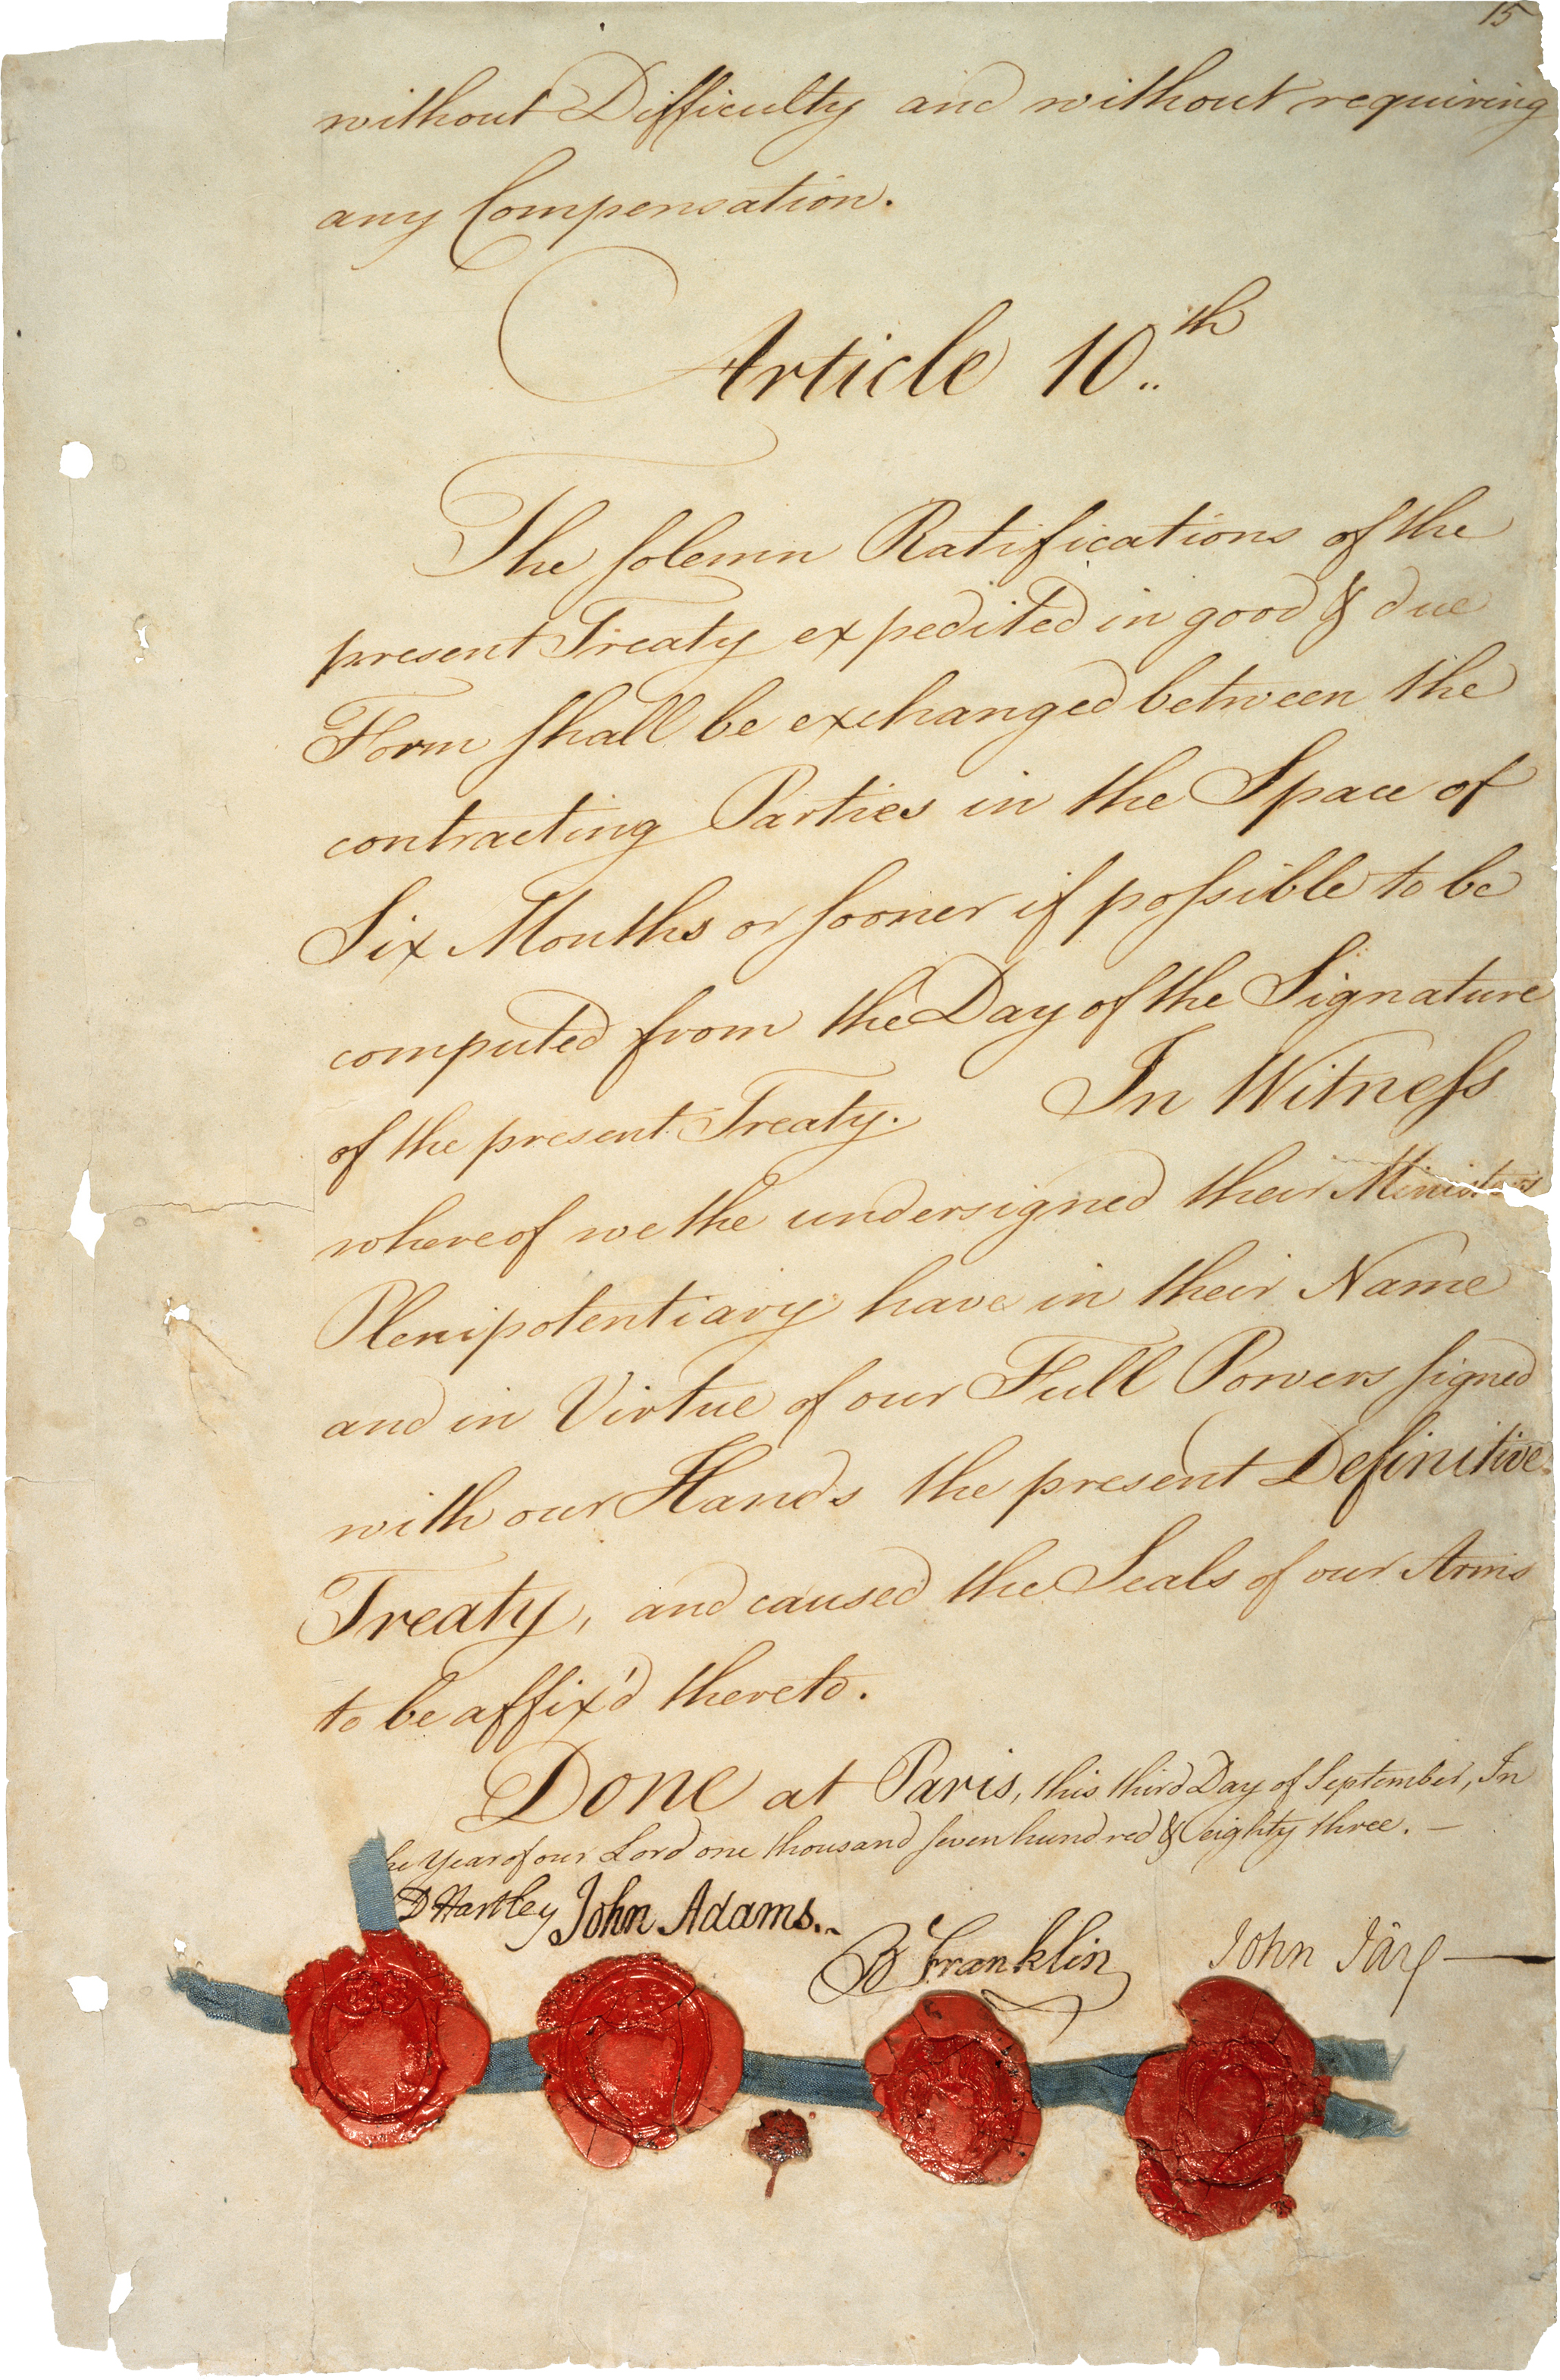 The last page of the Treaty of Paris (1783)